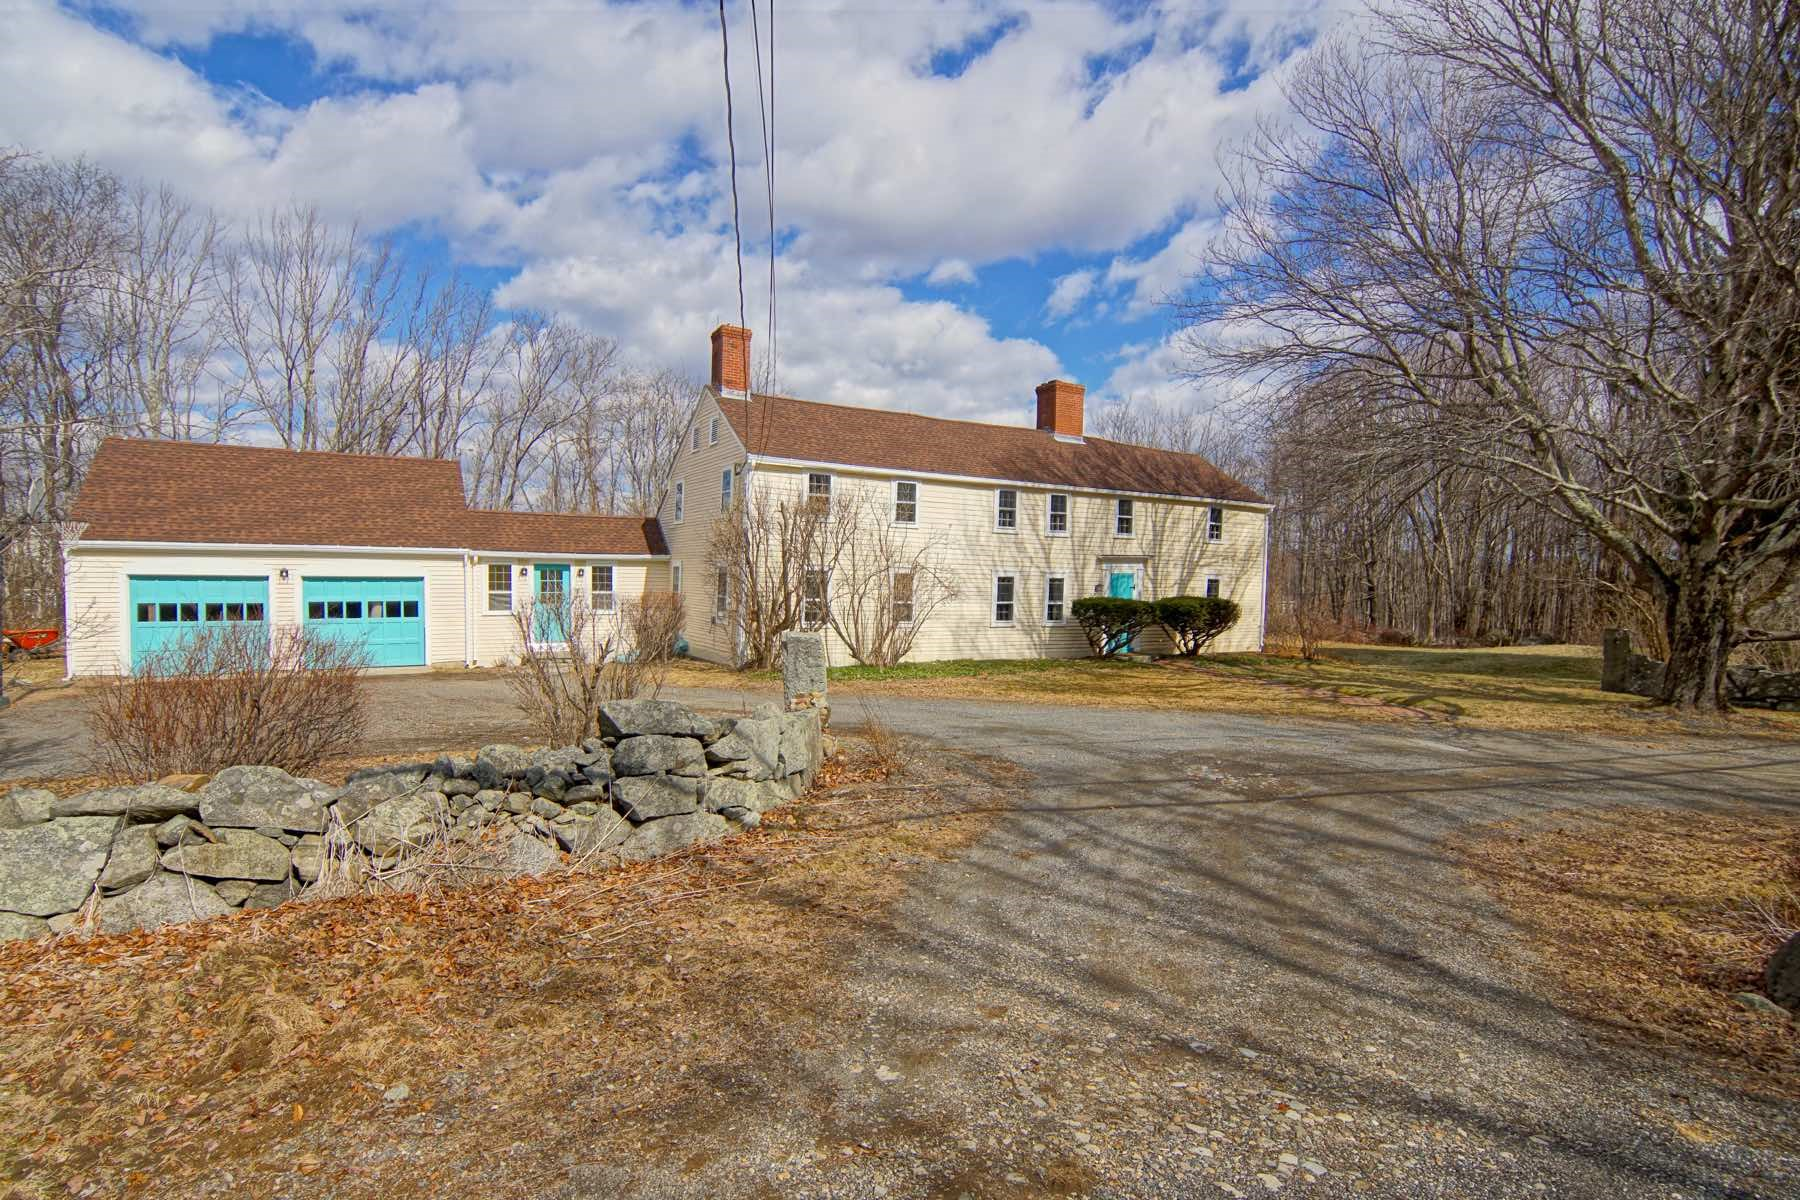 Single Family Homes for Sale at Antique Greenland Home 94 Dearborn Road Greenland, New Hampshire 03840 United States